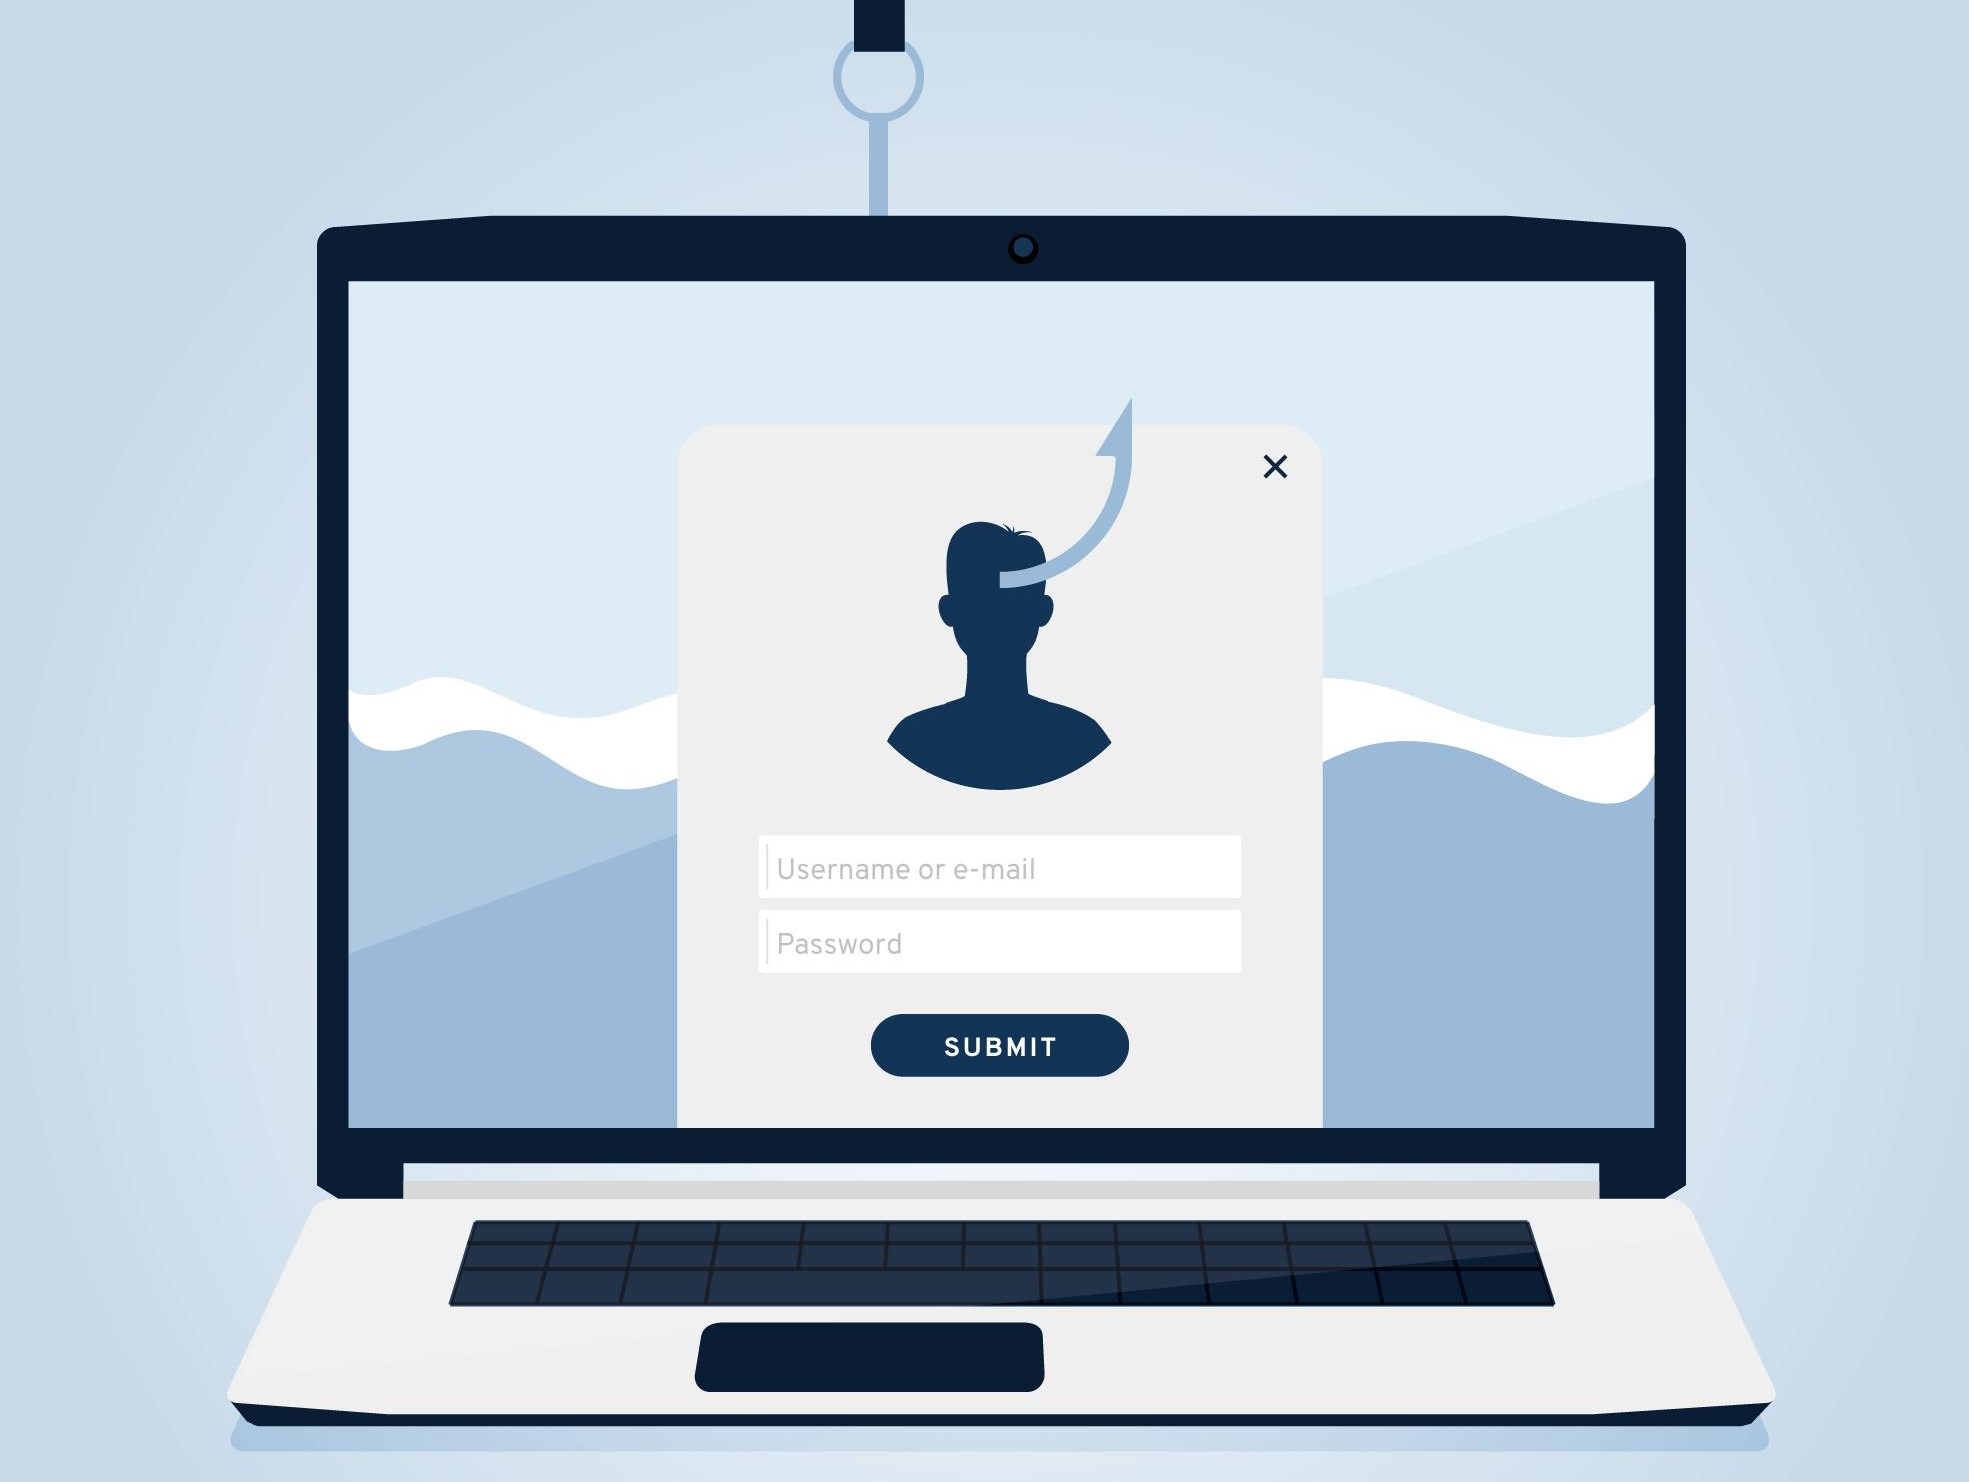 Phishing-Scams-A-Growing-Threat-for-Small-Businesses-1